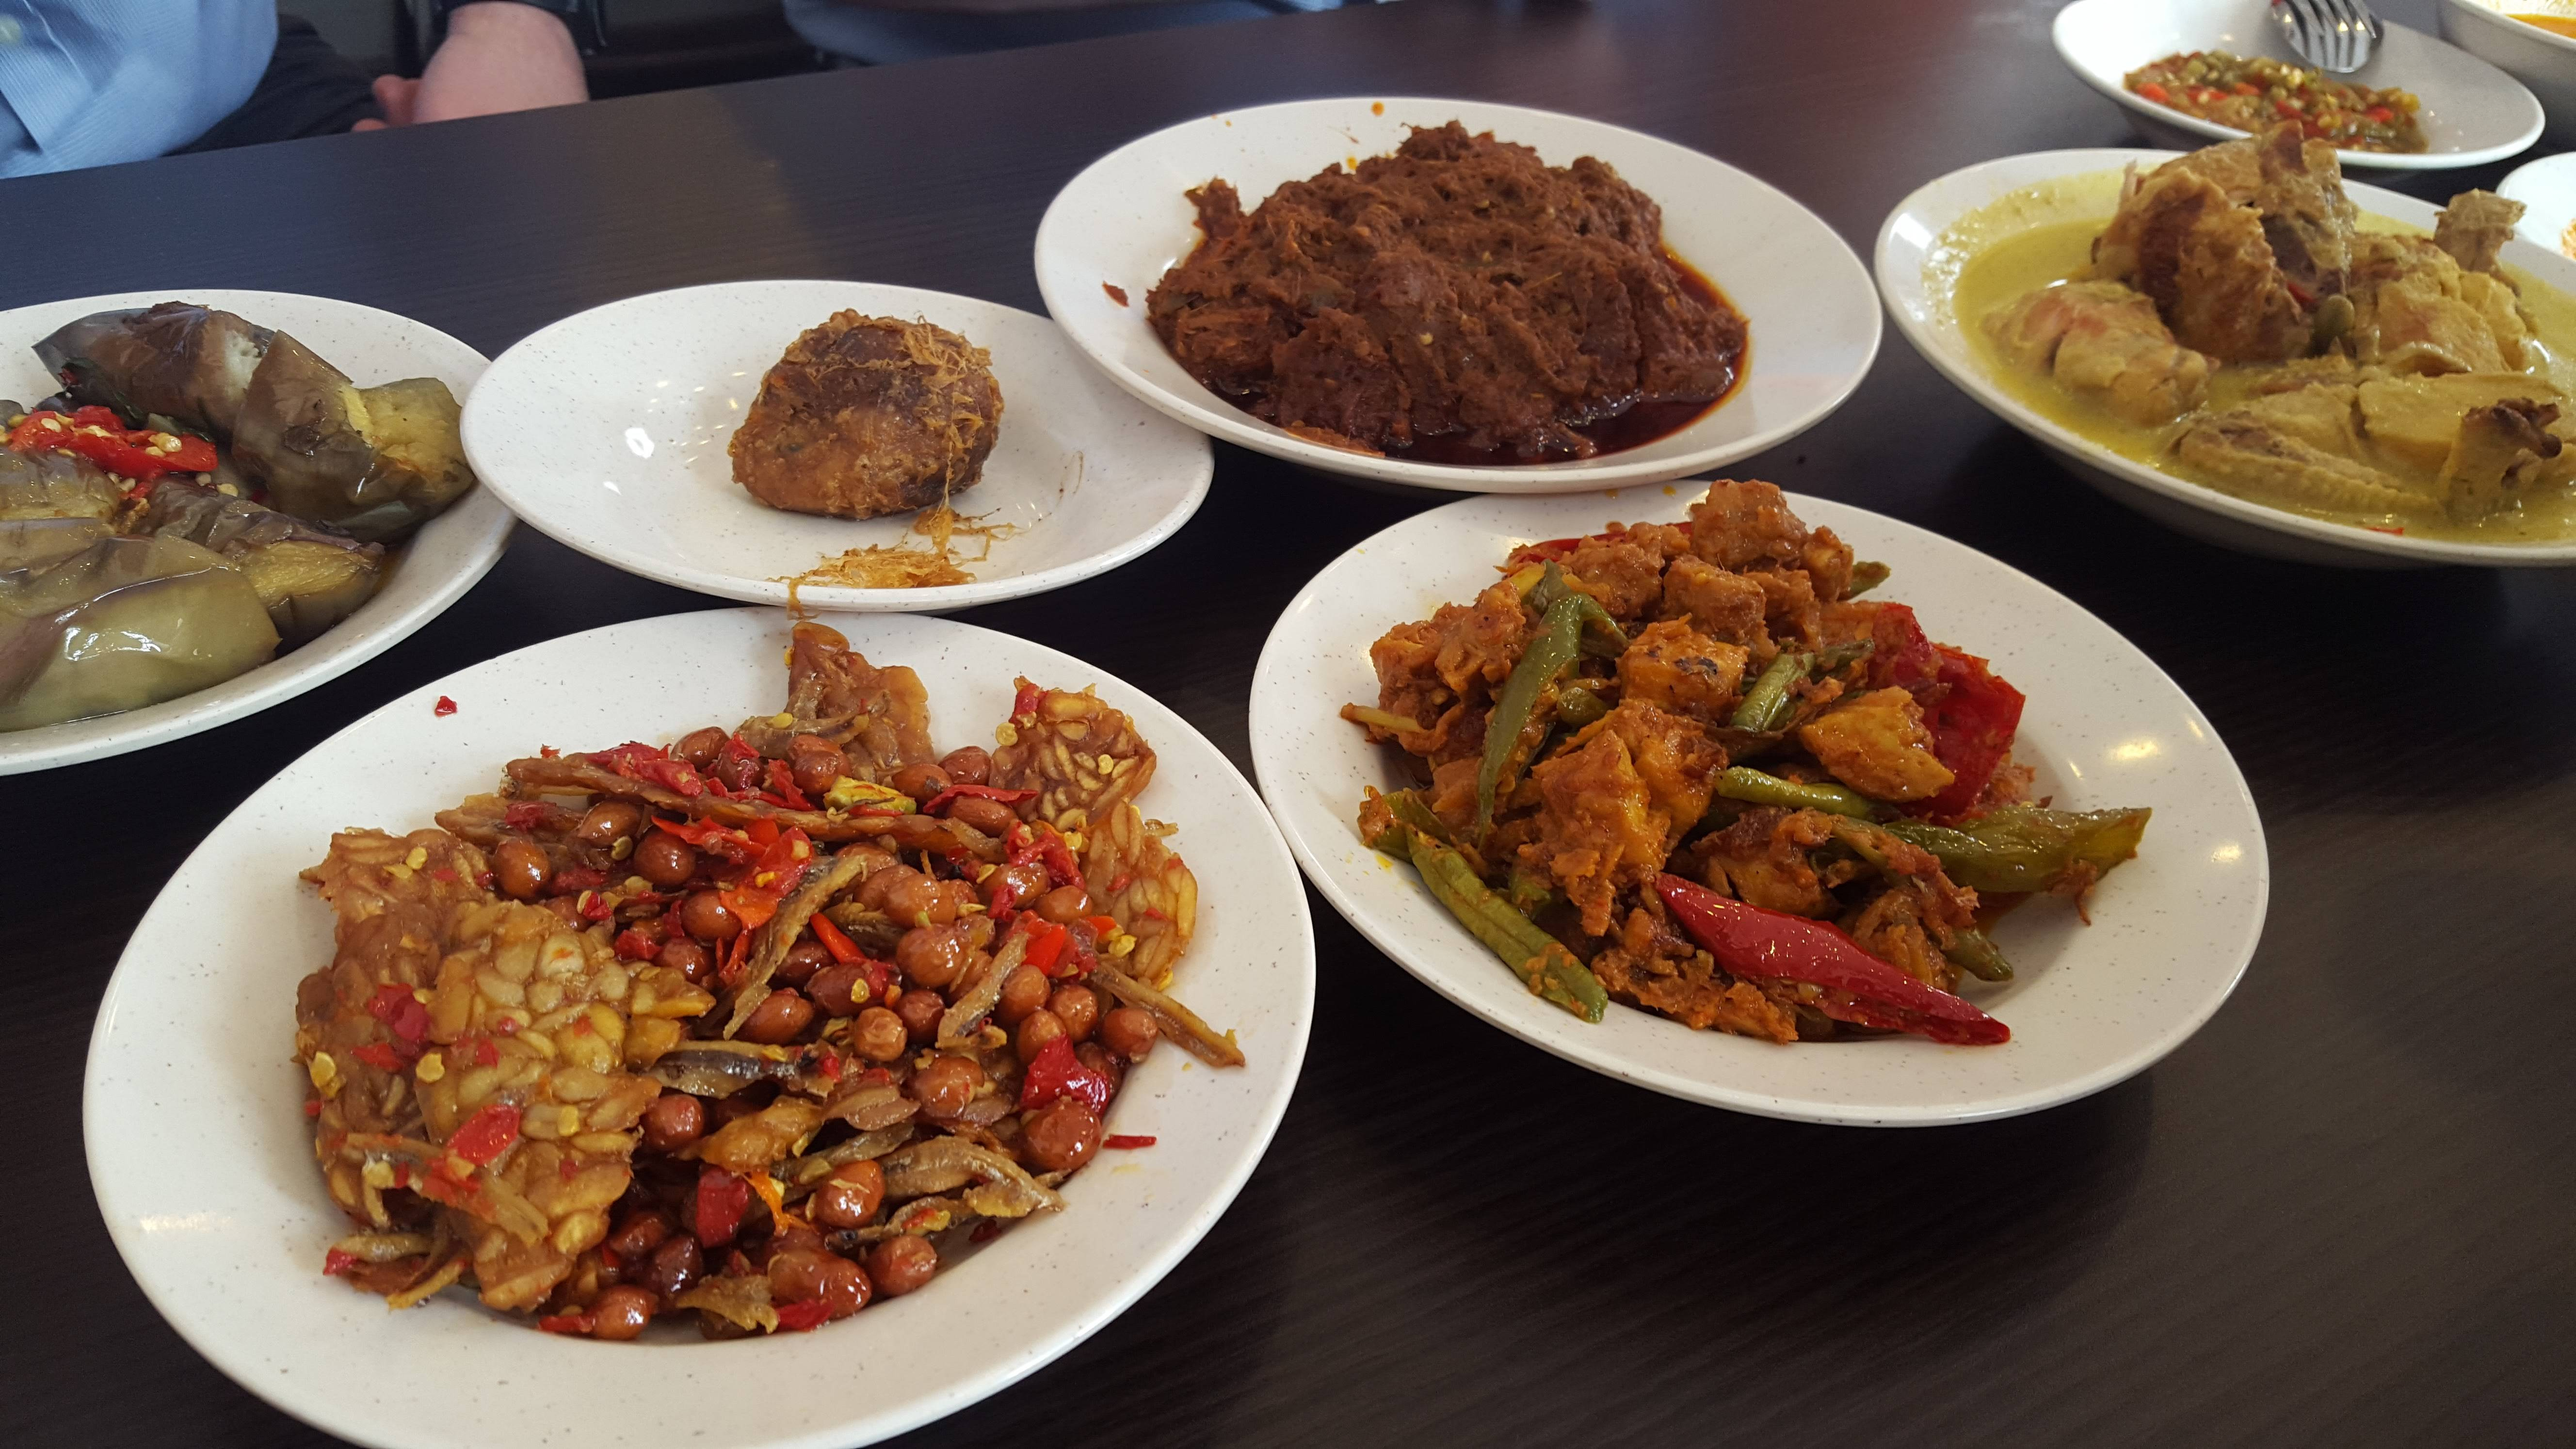 Rendang and other dishes